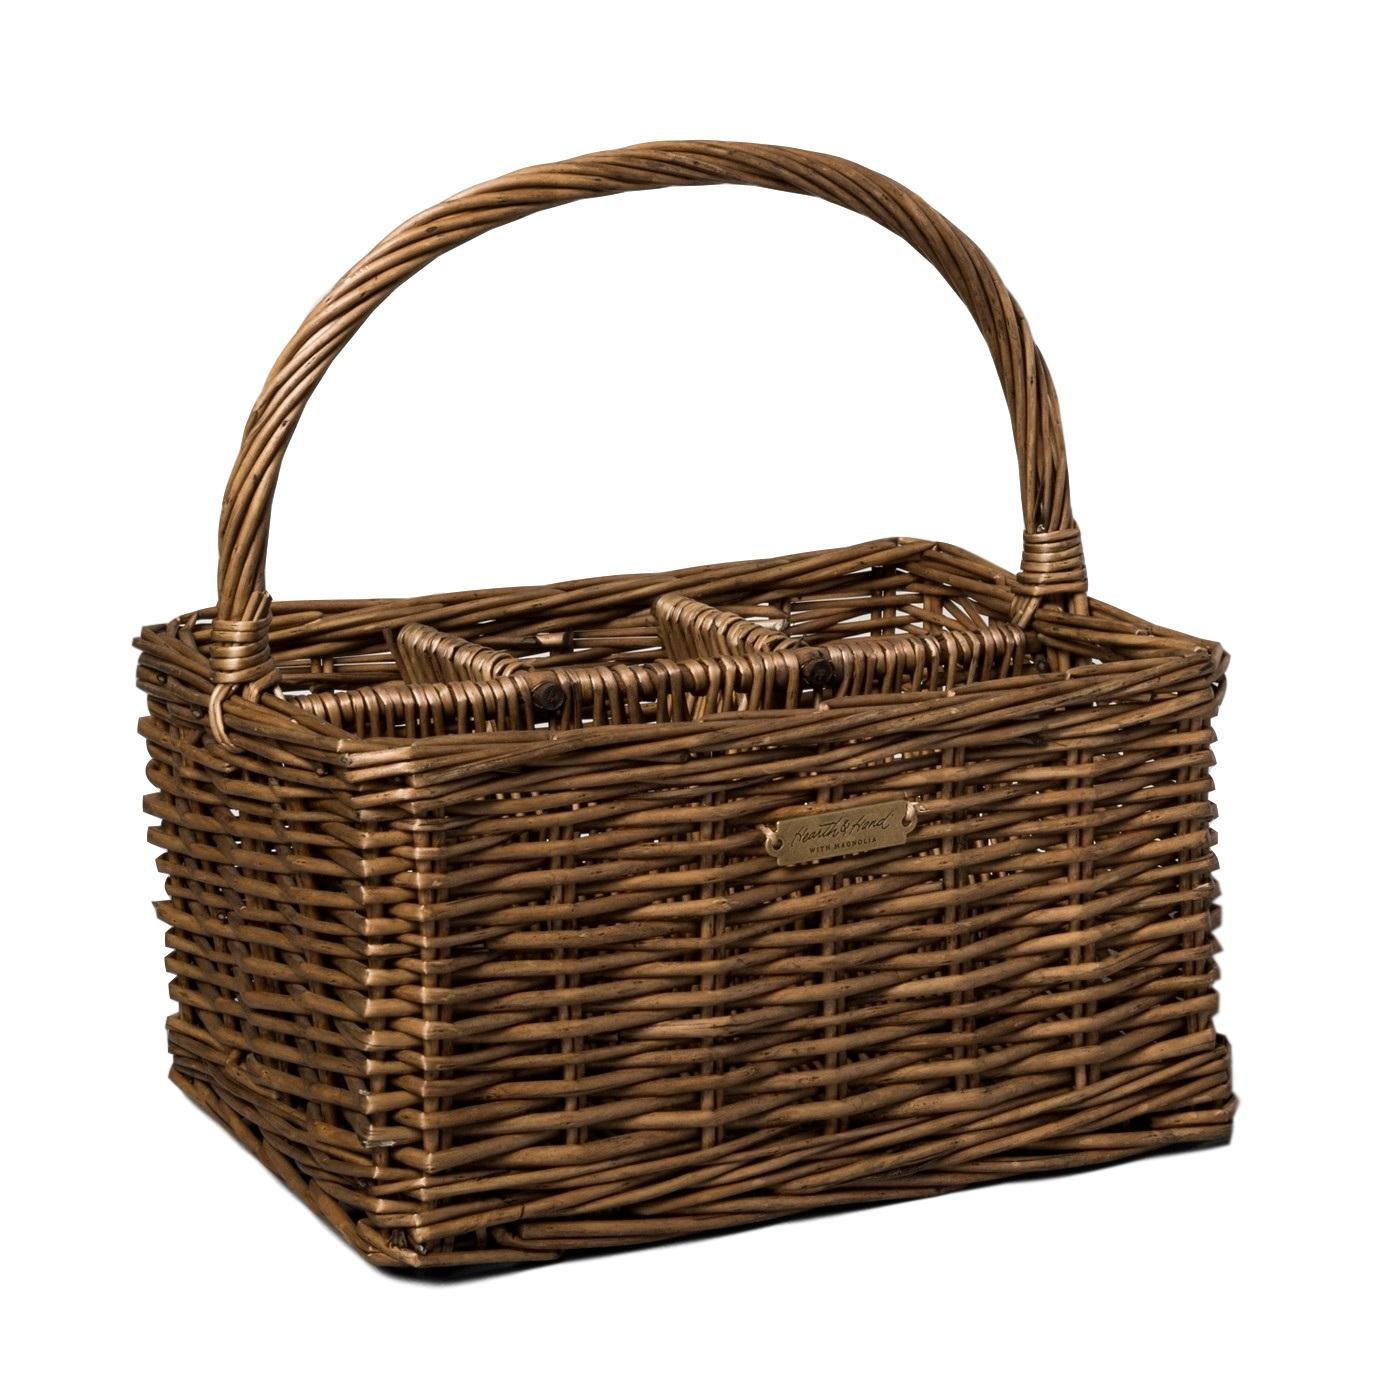 Hearth and Hand Magnolia Flatware Caddy Willow Organizer Parties Picnic Utensil Holder